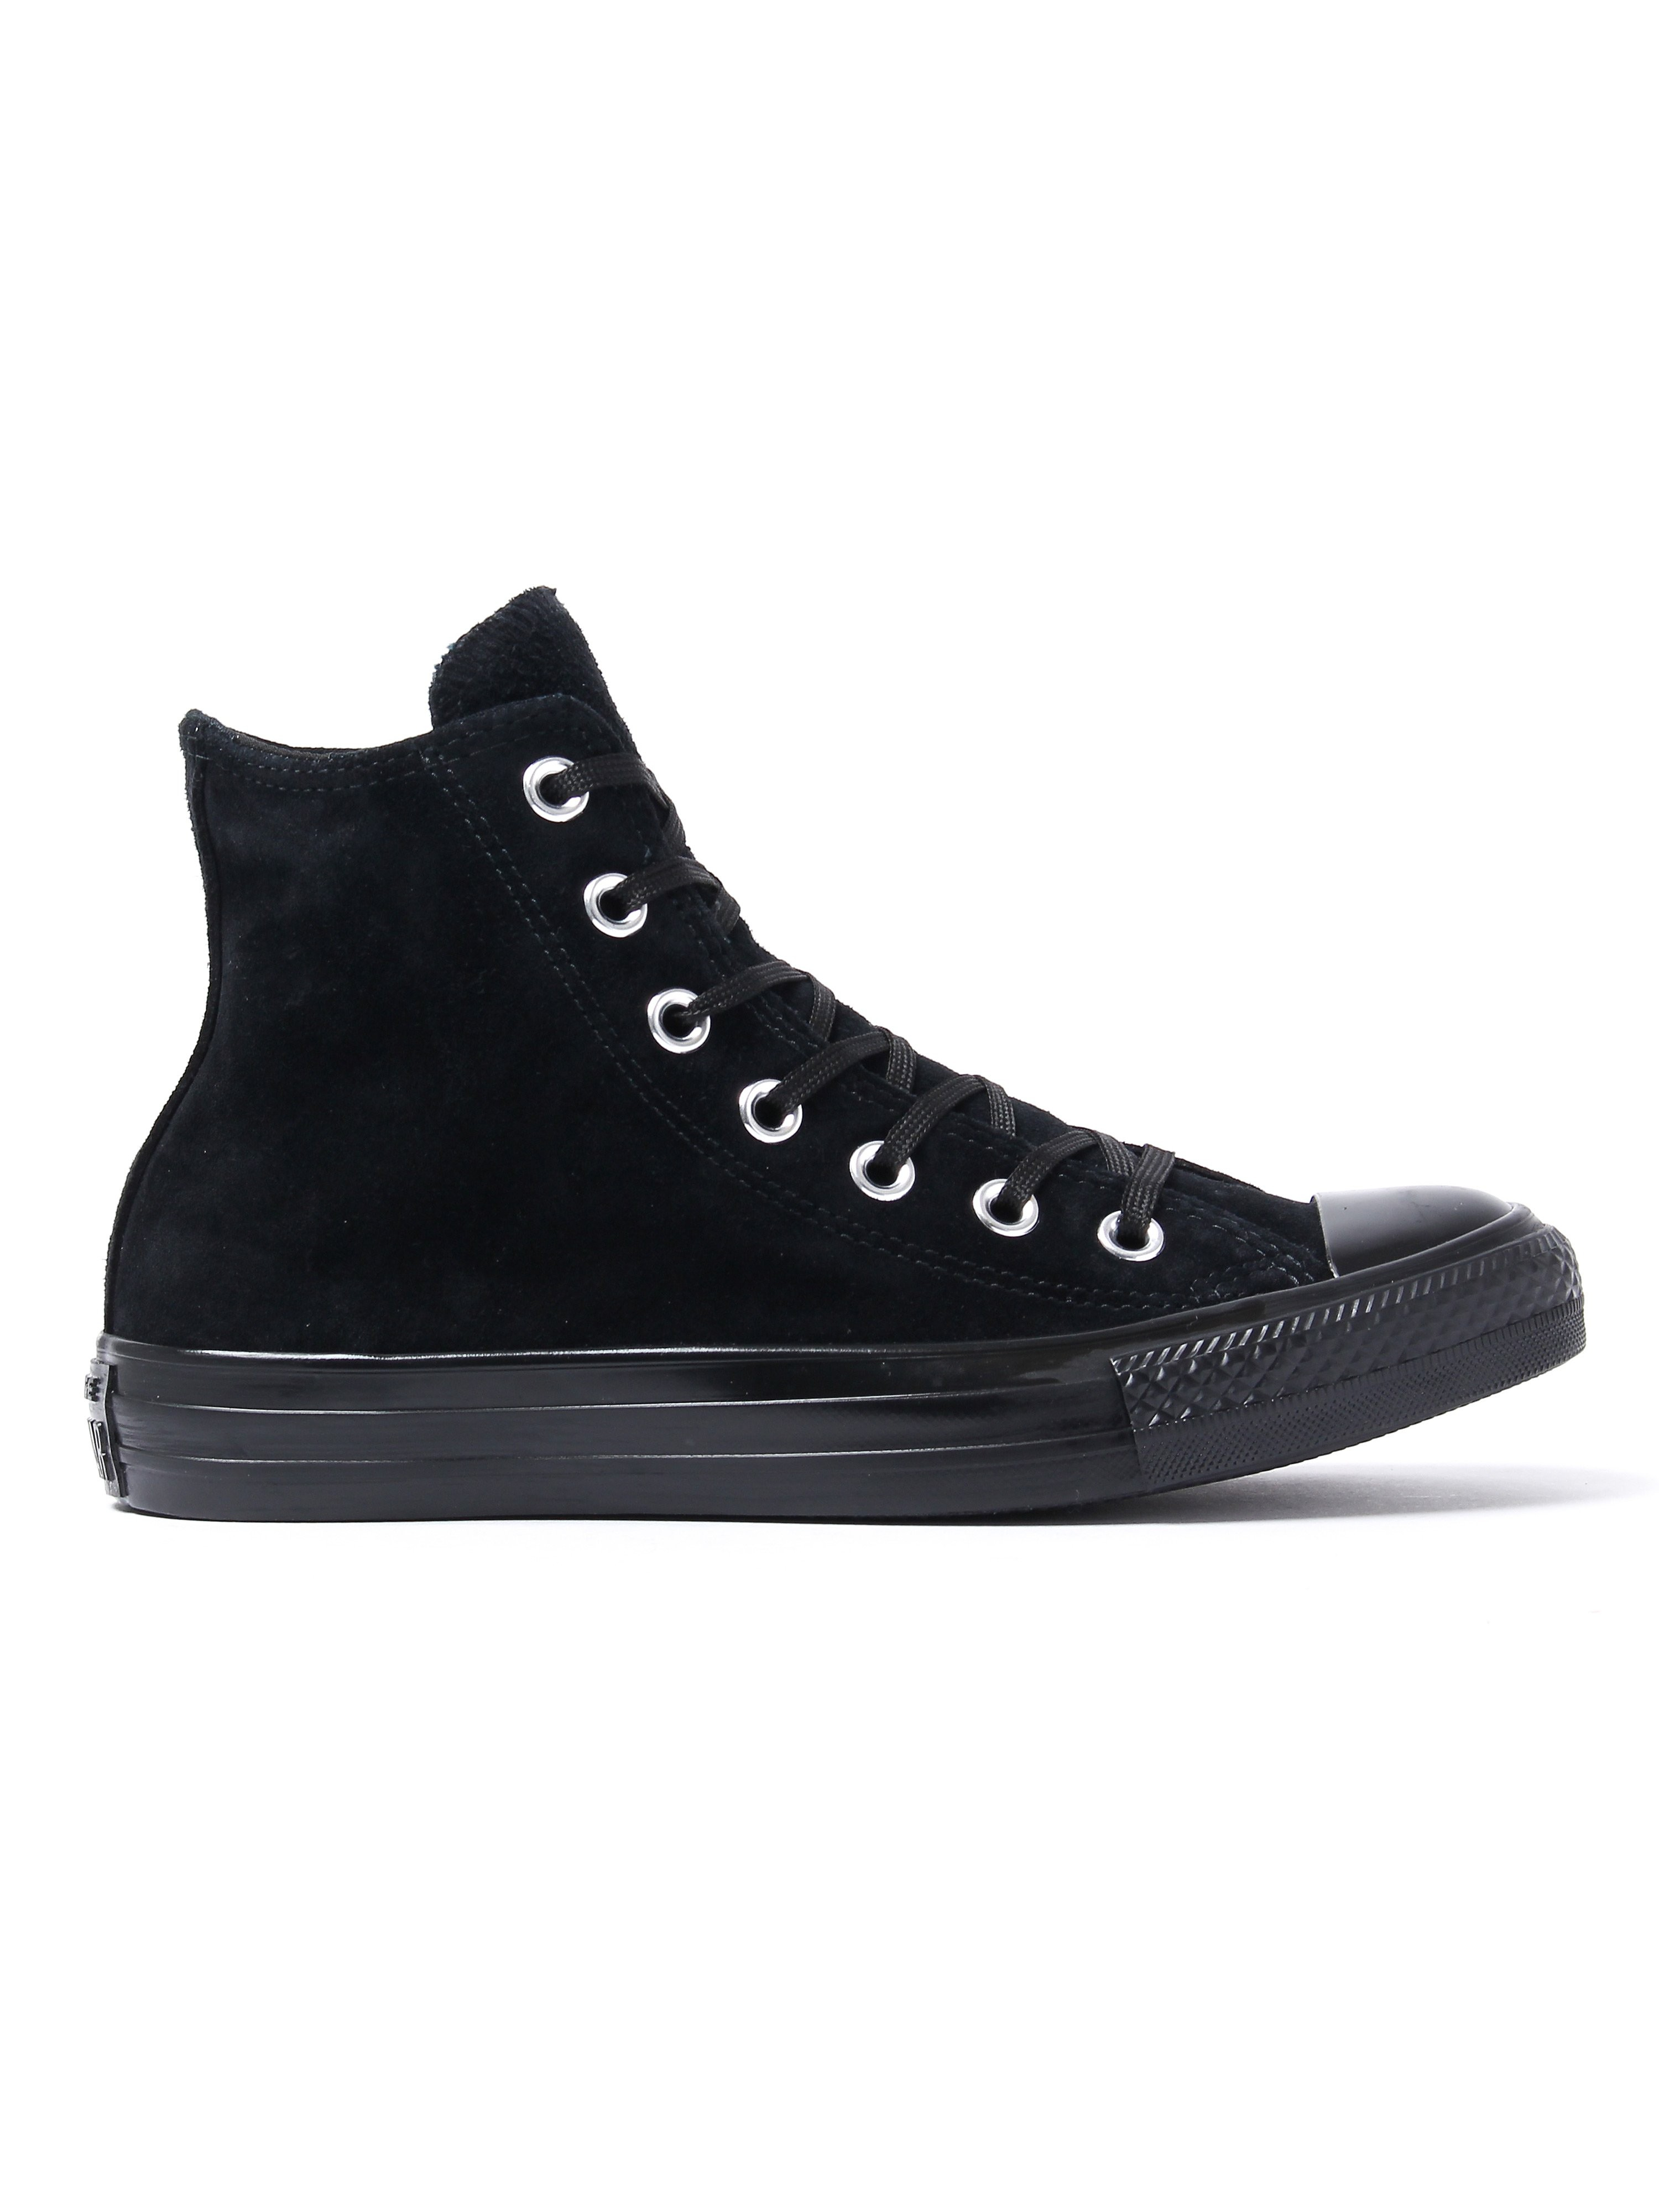 Converse Women's Chuck Taylor All Star HI Counter Climate Trainers - Black Suede